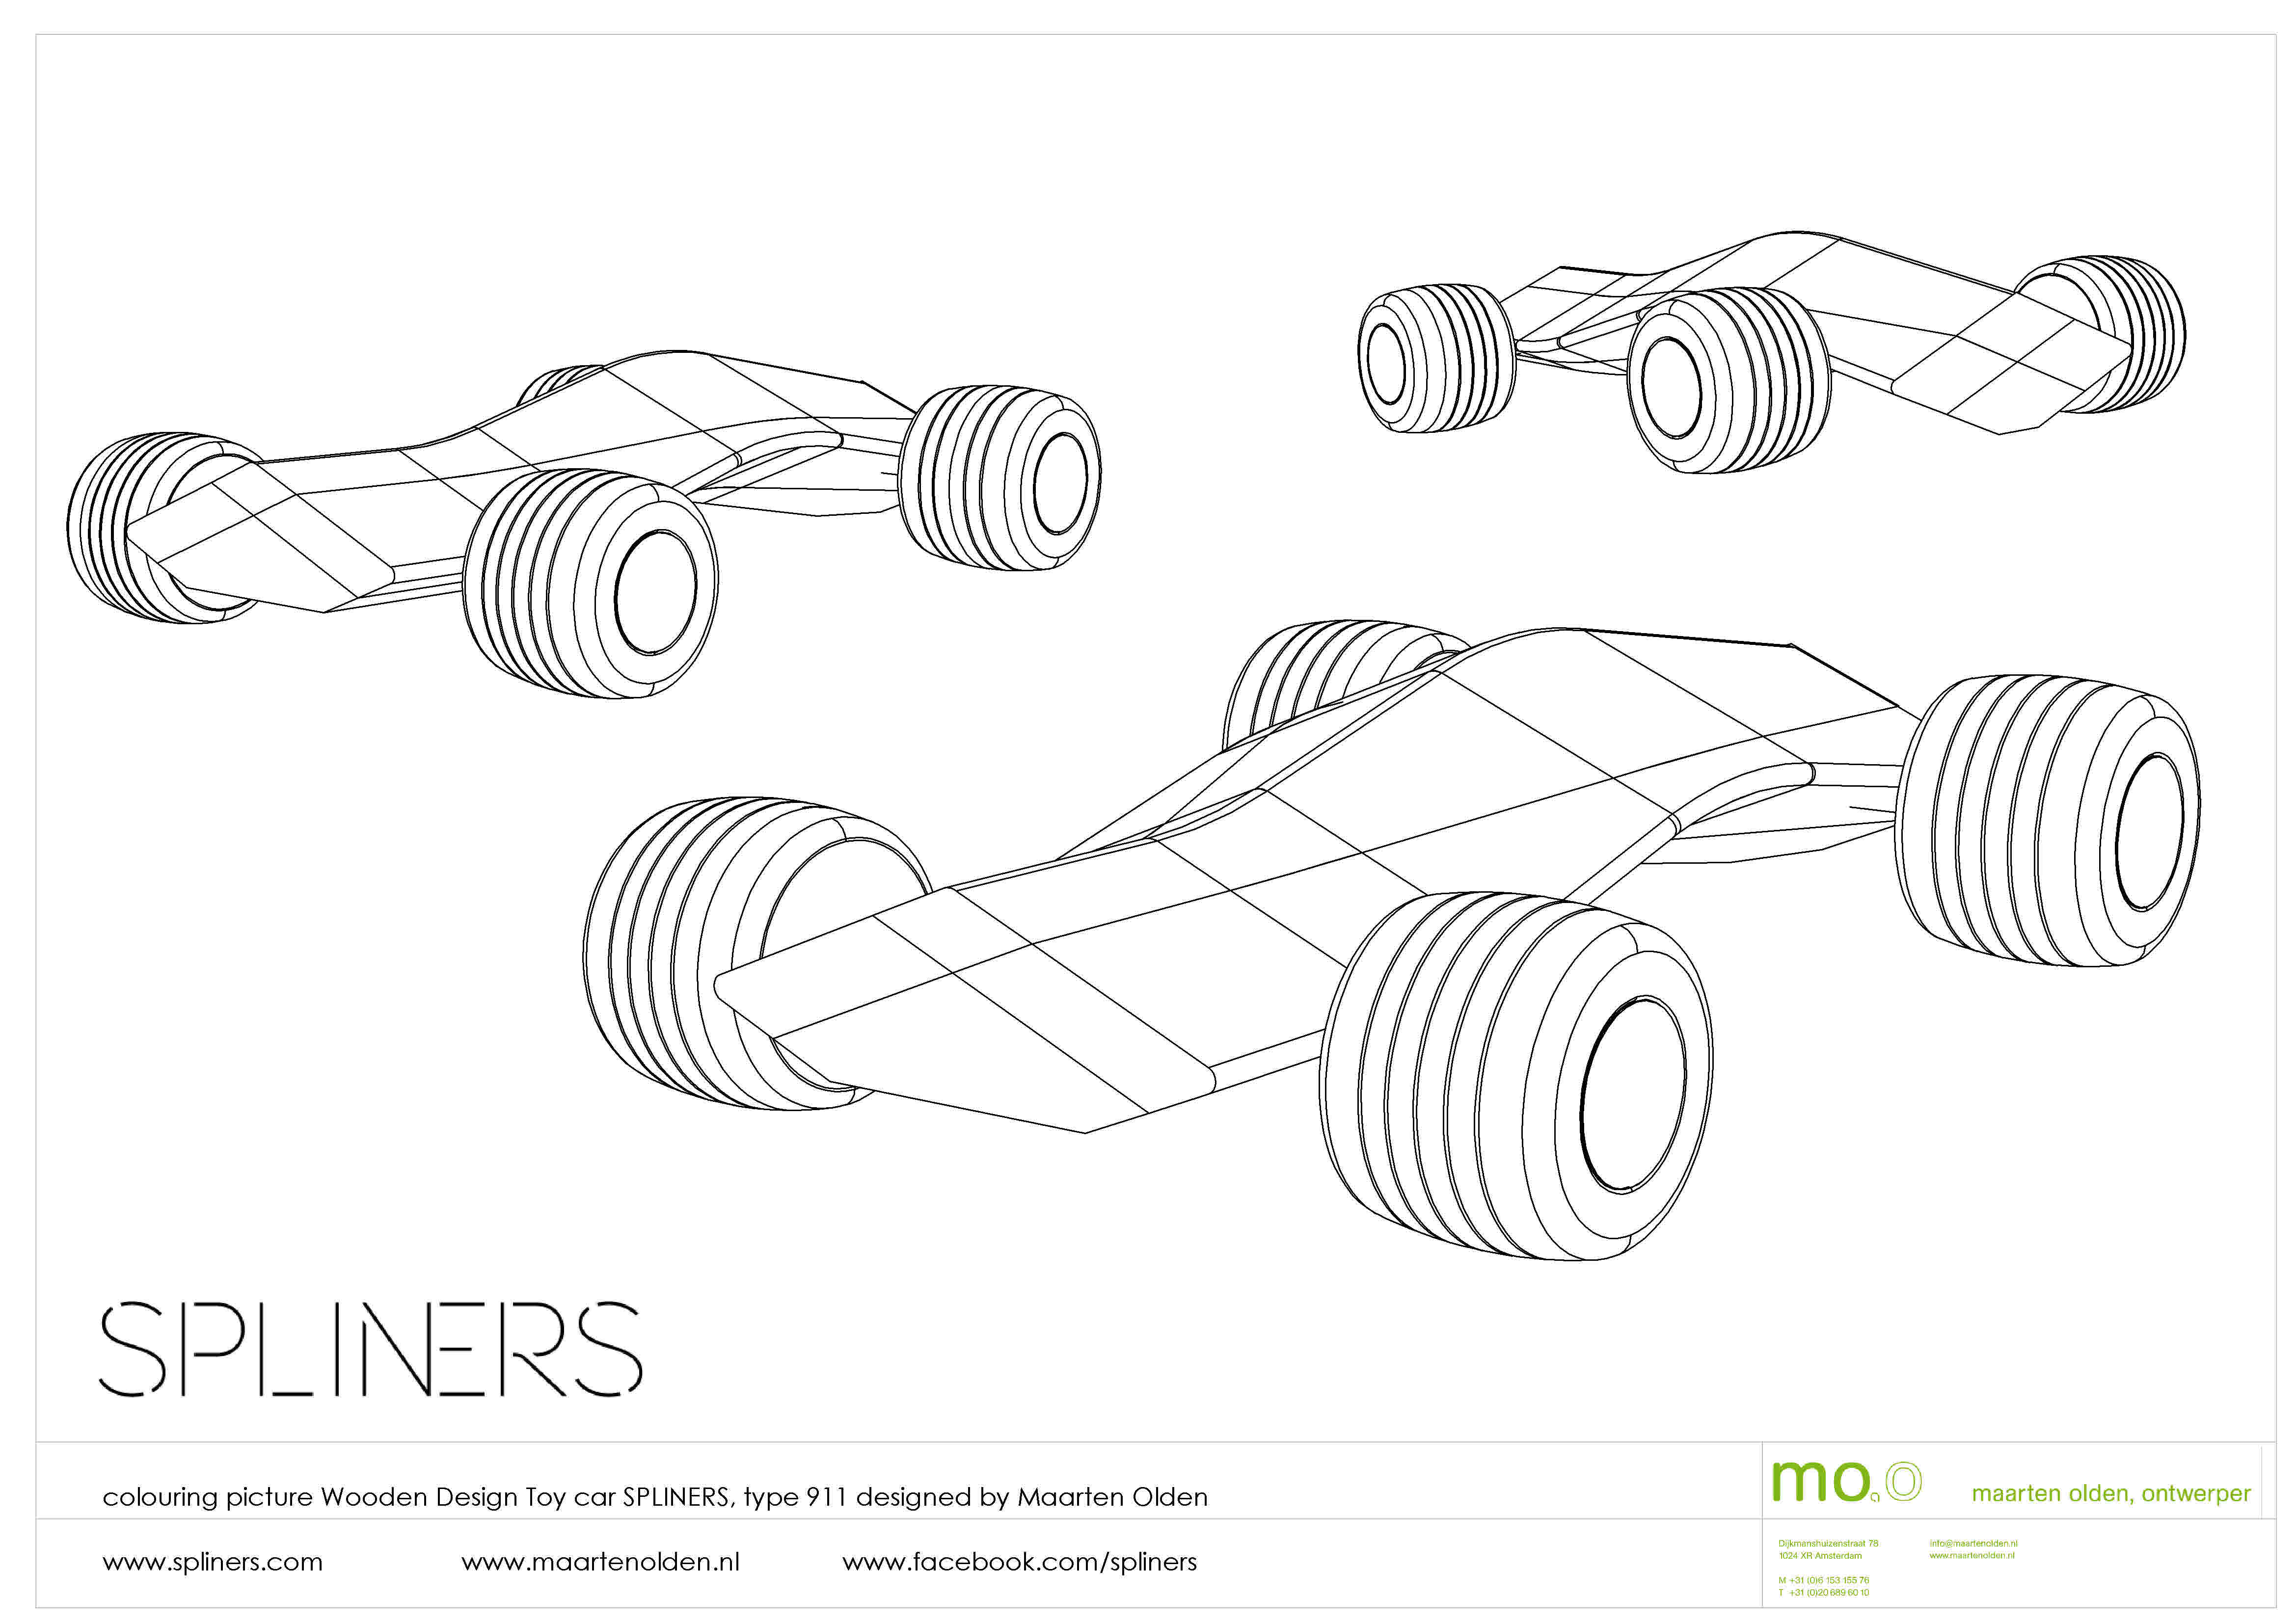 colouring picture spliners 911 wooden toy car by maarten olden